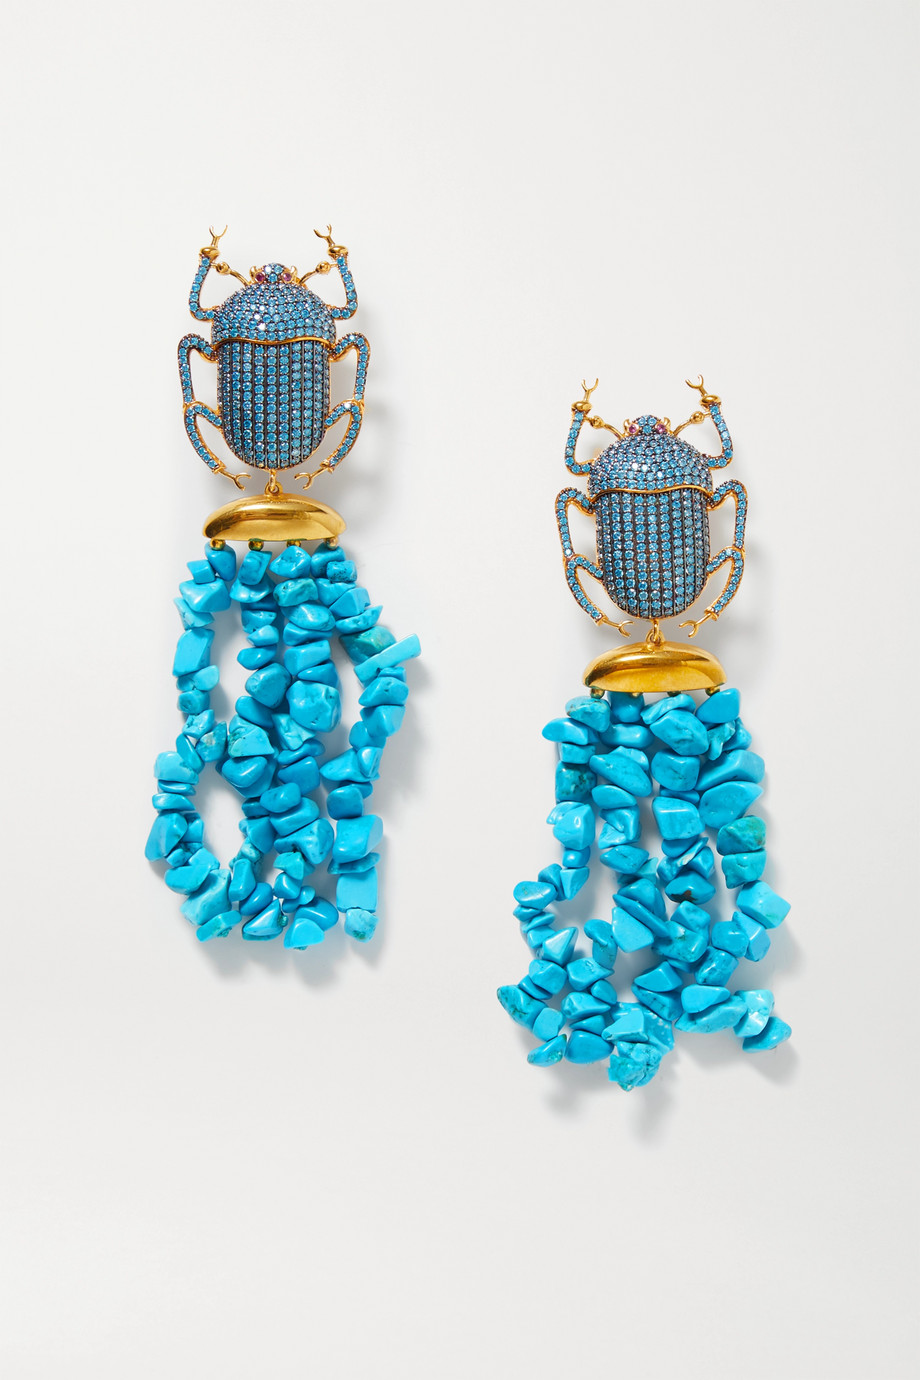 Begüm Khan Pharaoh Patmos gold-plated, turquoise and crystal clip earrings